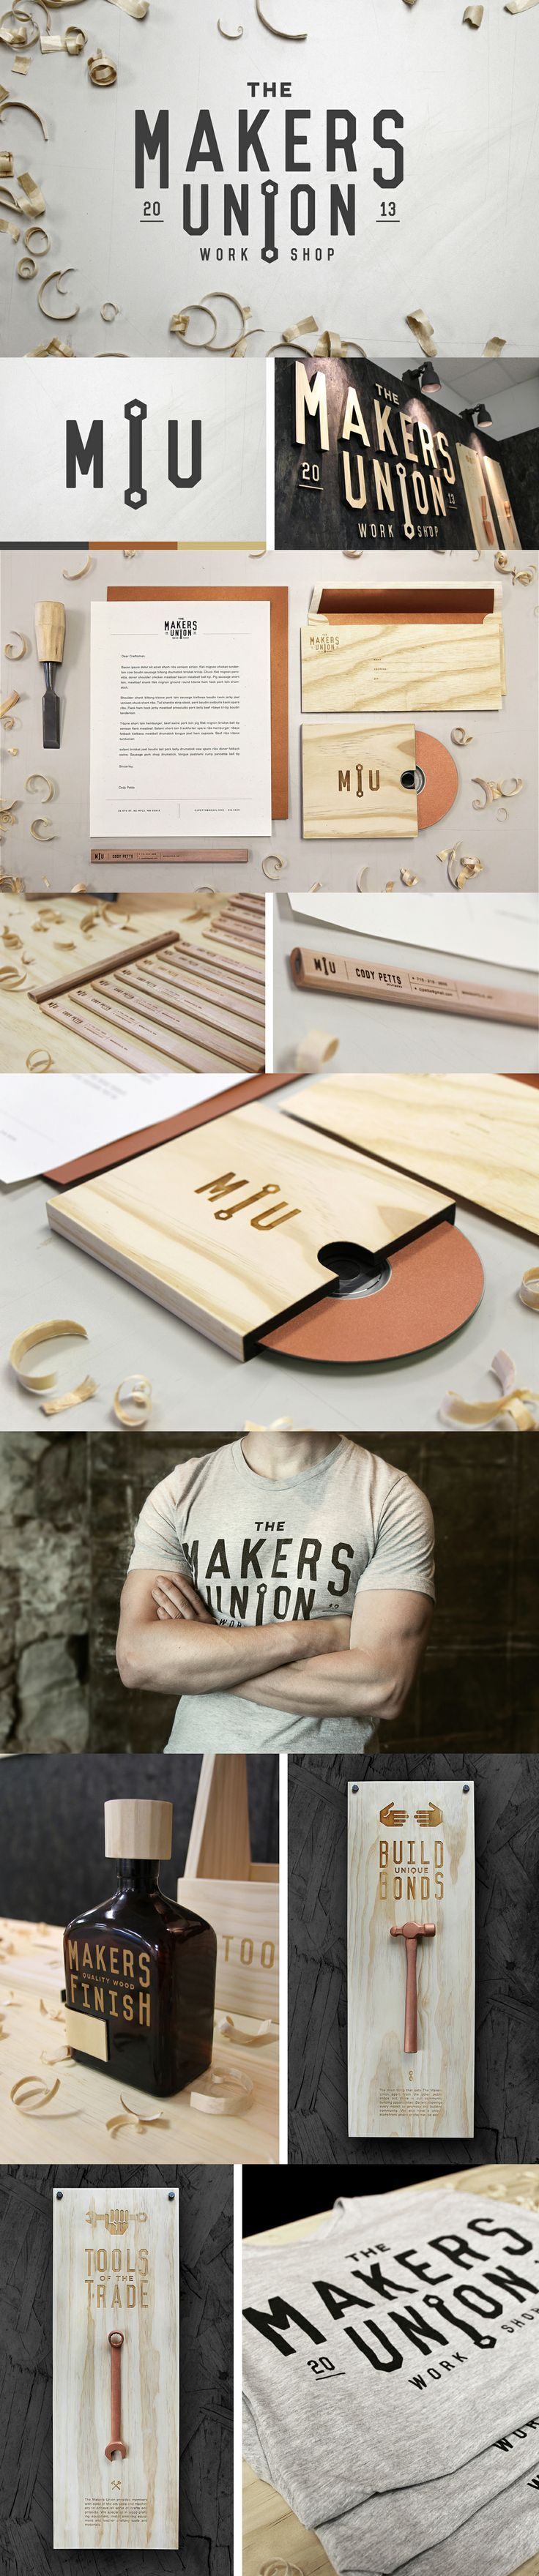 The Makers Union branding and #stationery design by Cody Petts